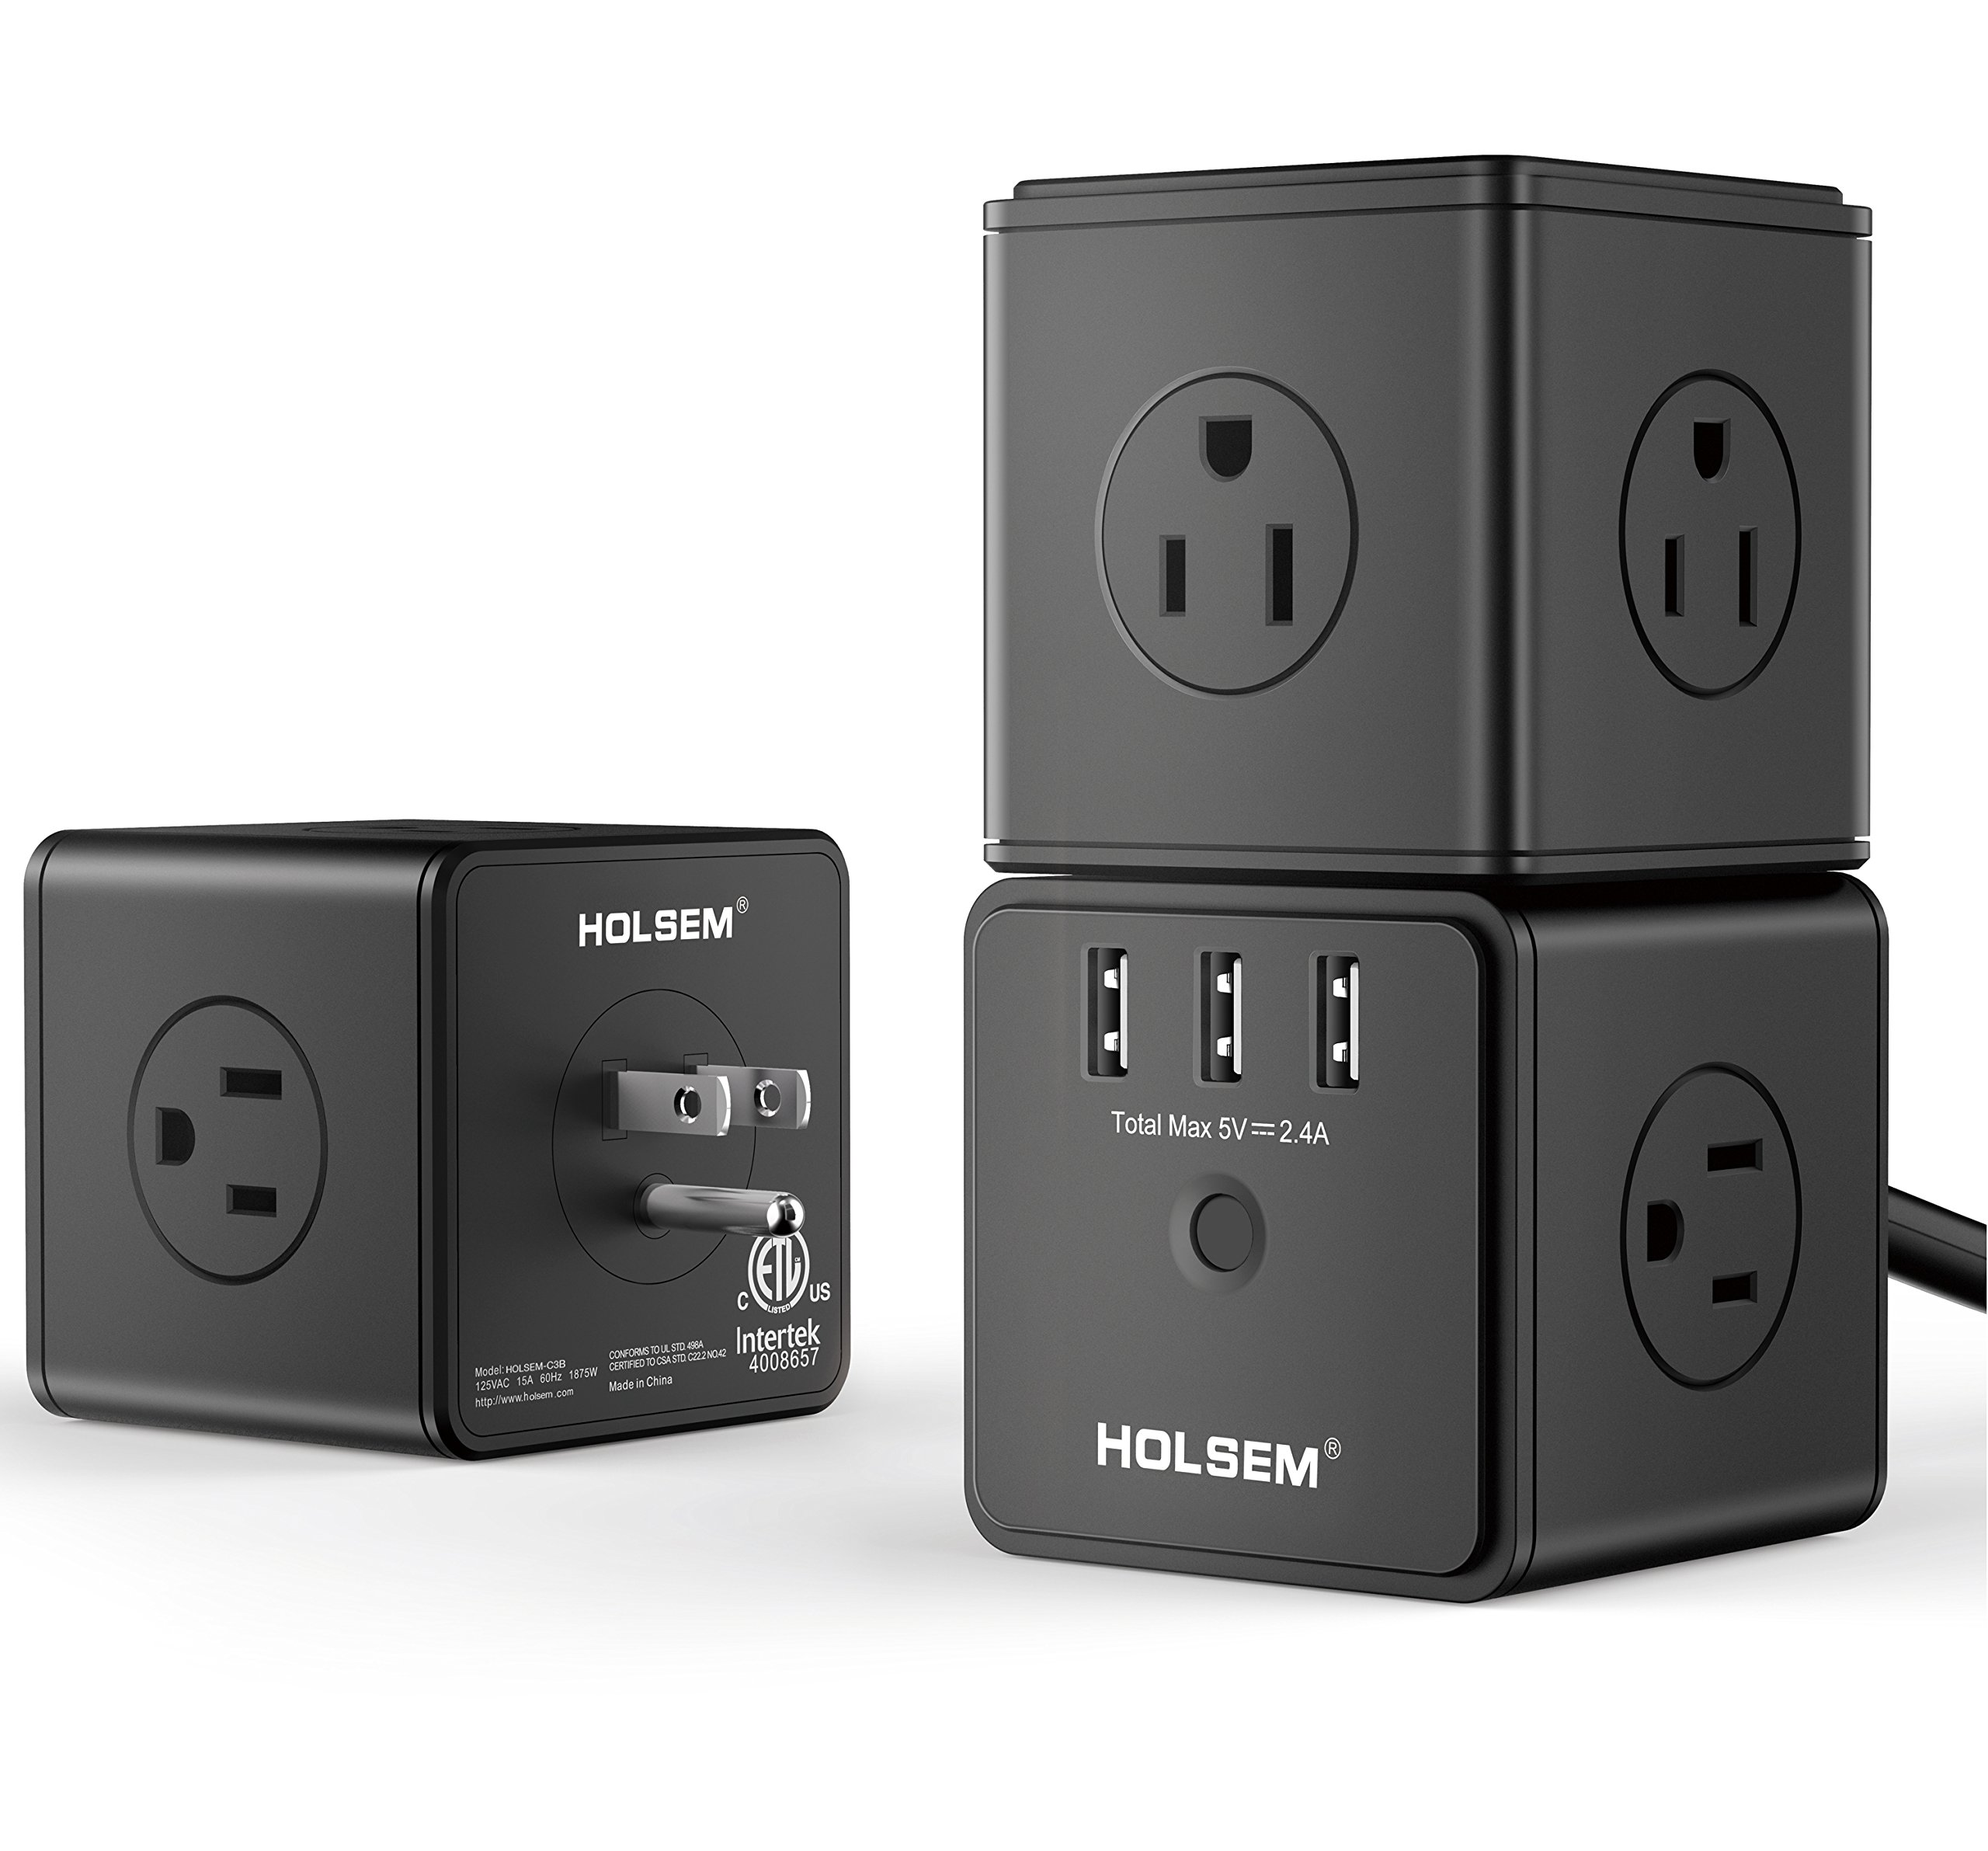 HOLSEM Power Cube Surge Protector 14 AC outlets, 3 Smart USB Ports (5V/2.4A) 6' Heavy Duty Extension Cord, Black (3 pack) by HOLSEM